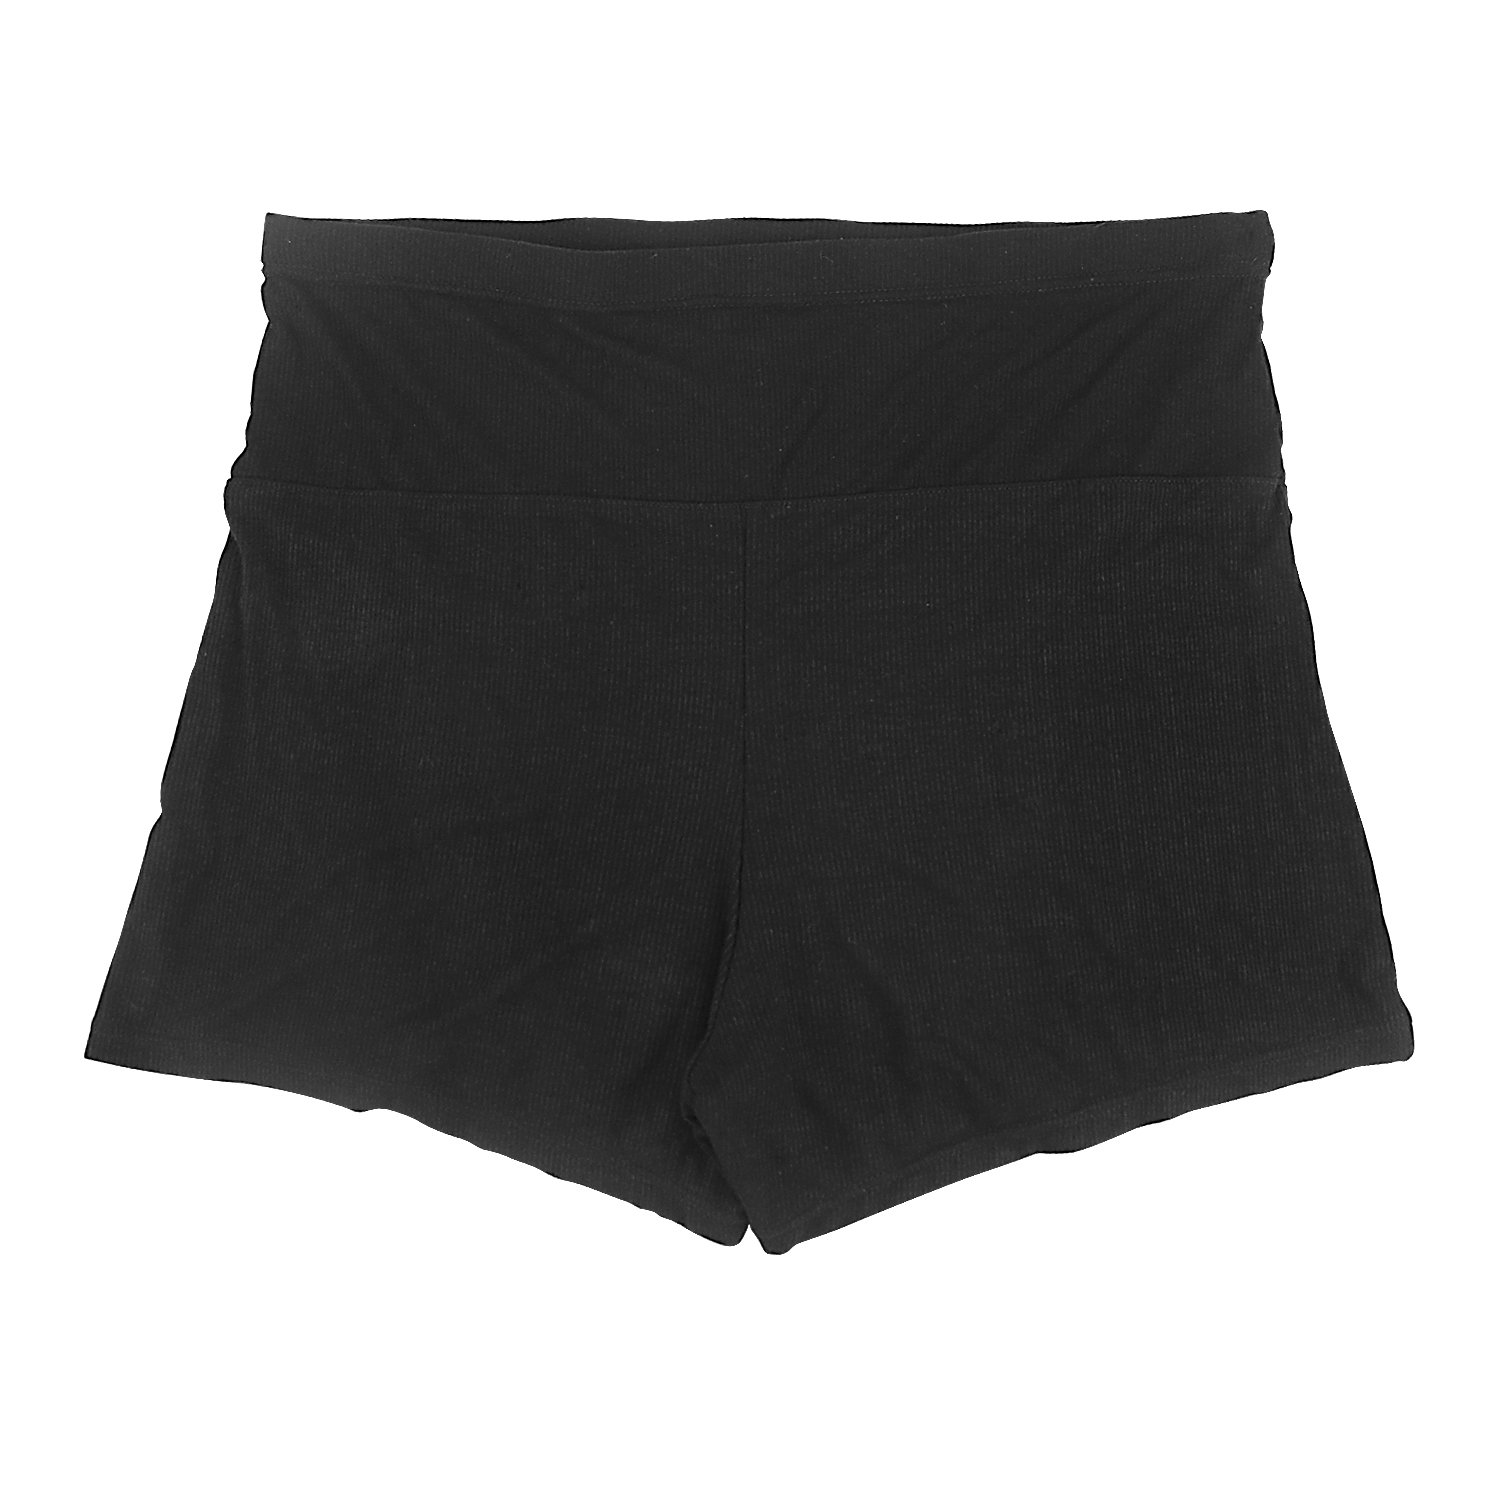 METALIFE Cotton Black Maternity Shorts Pants for Pregnant Women L